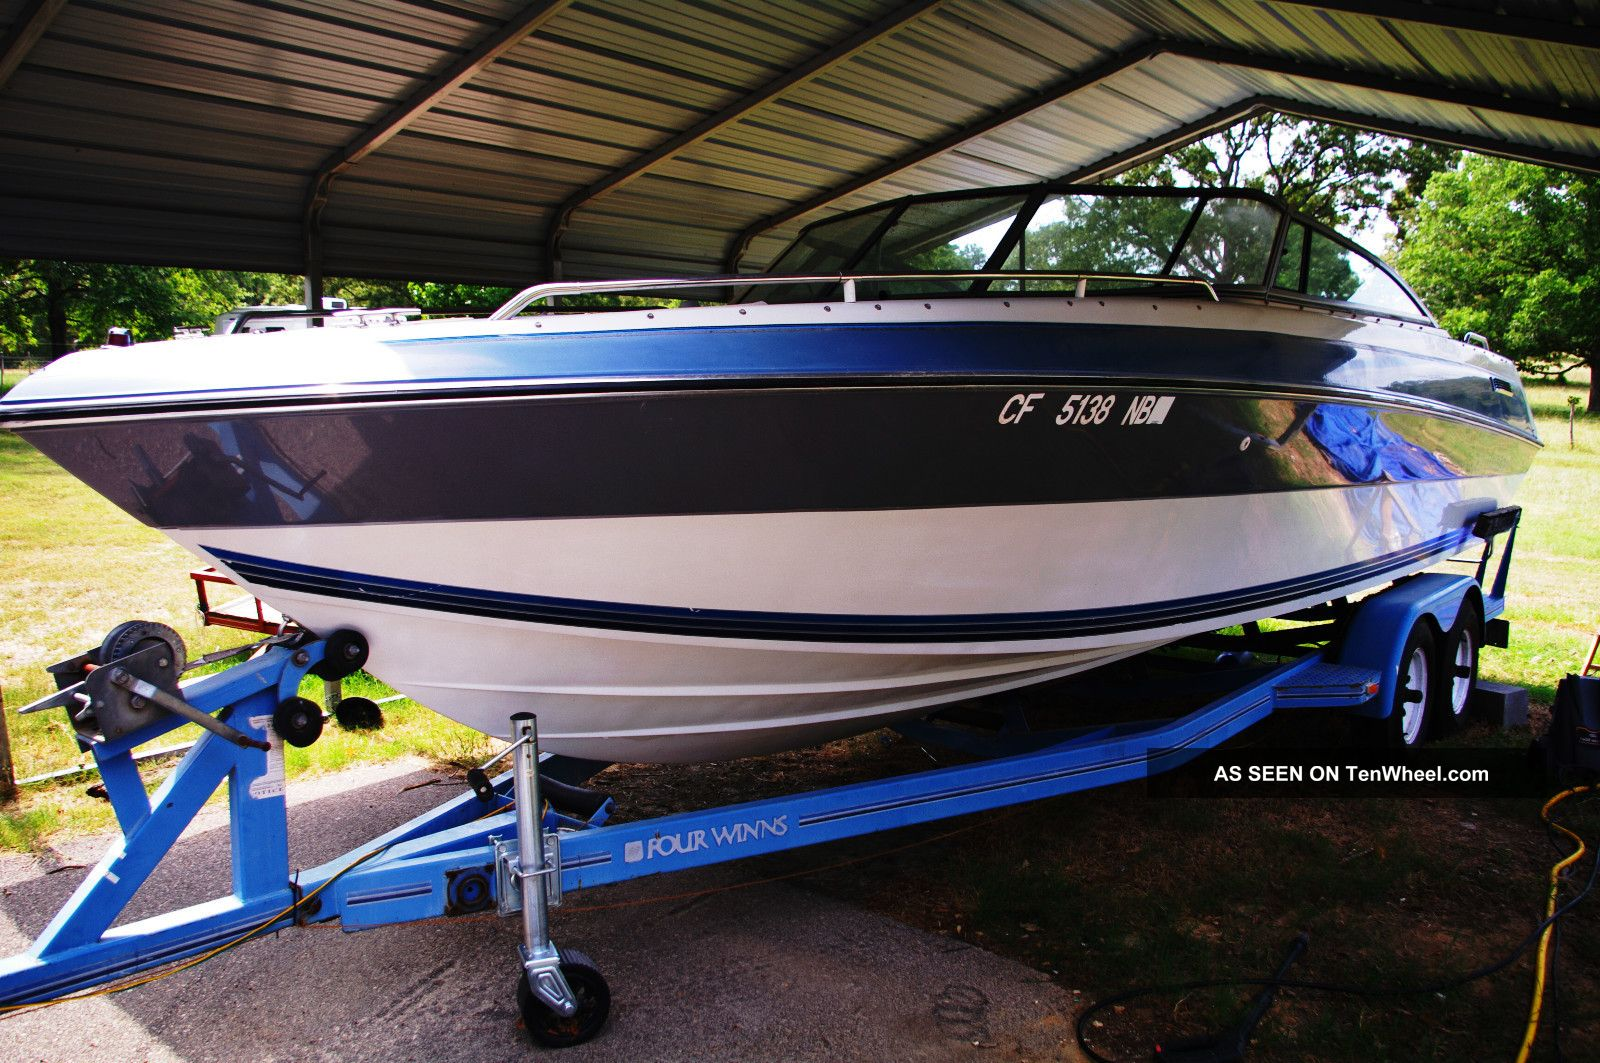 1991 Four Winns Horizon220 Ski / Wakeboarding Boats photo